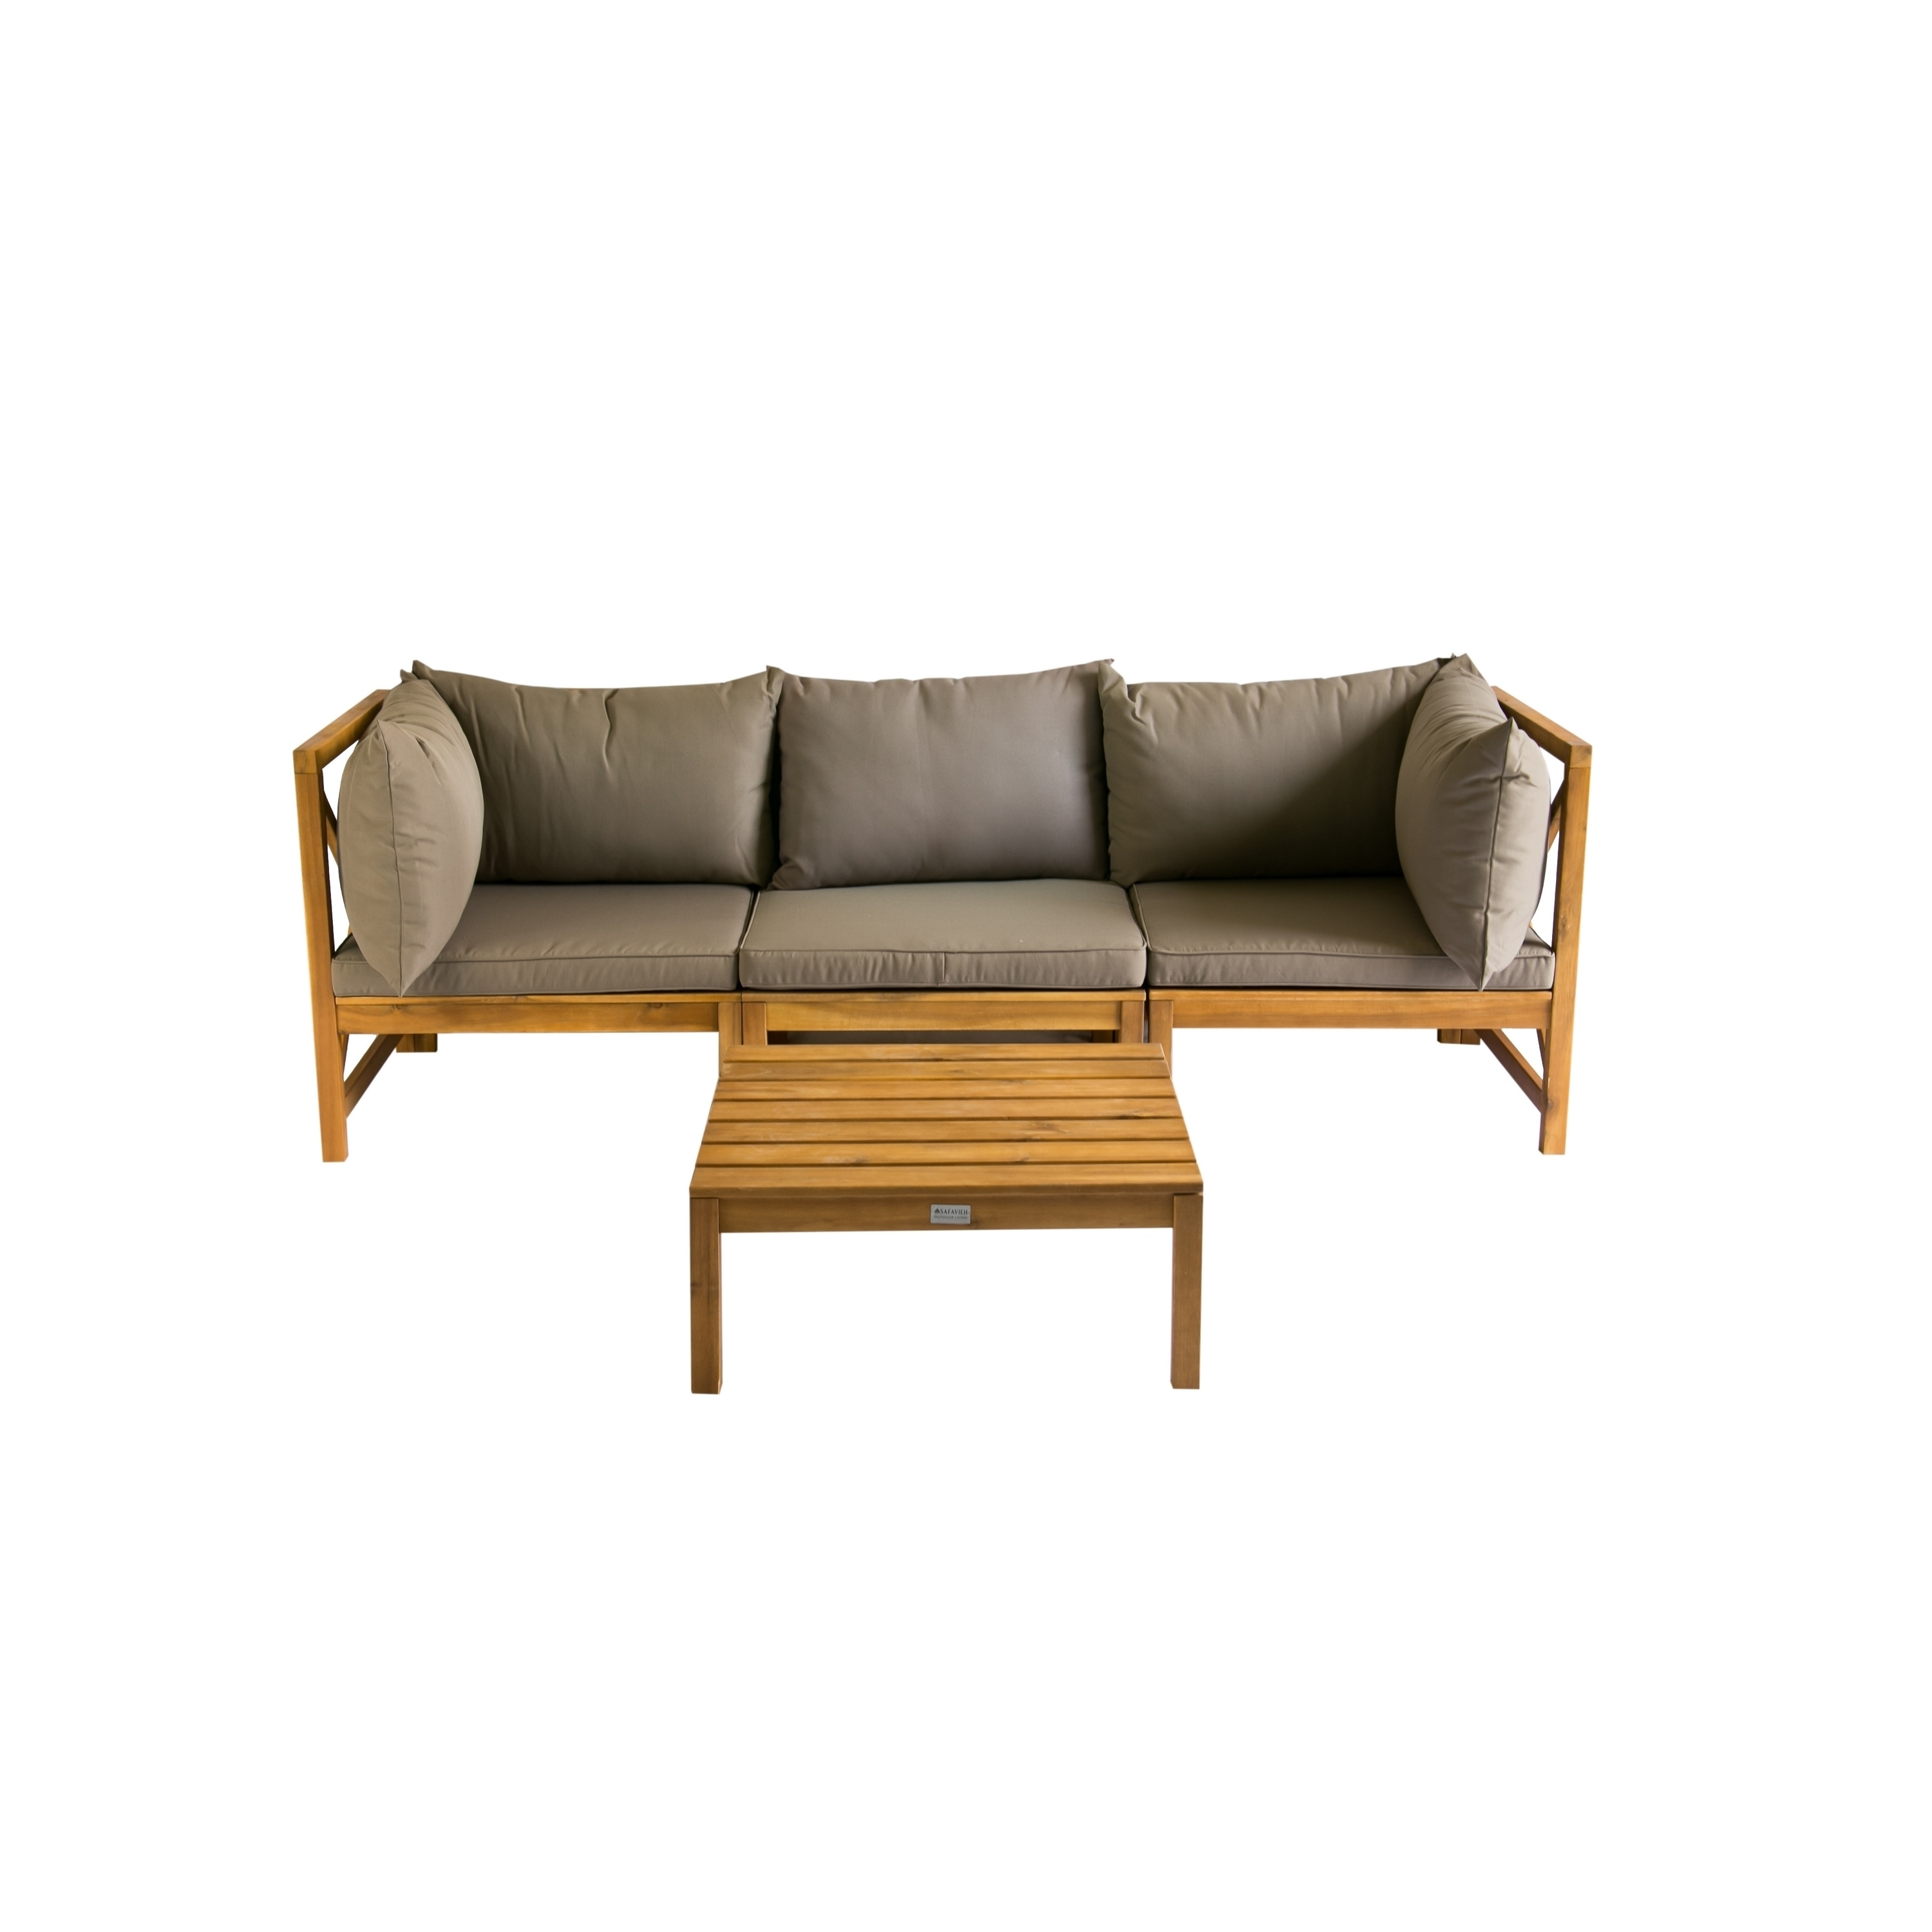 Safavieh Outdoor Living Lynwood Brown Acacia Wood 4 Piece Taupe Cushion Sectional Set On Free Shipping Today 9126348